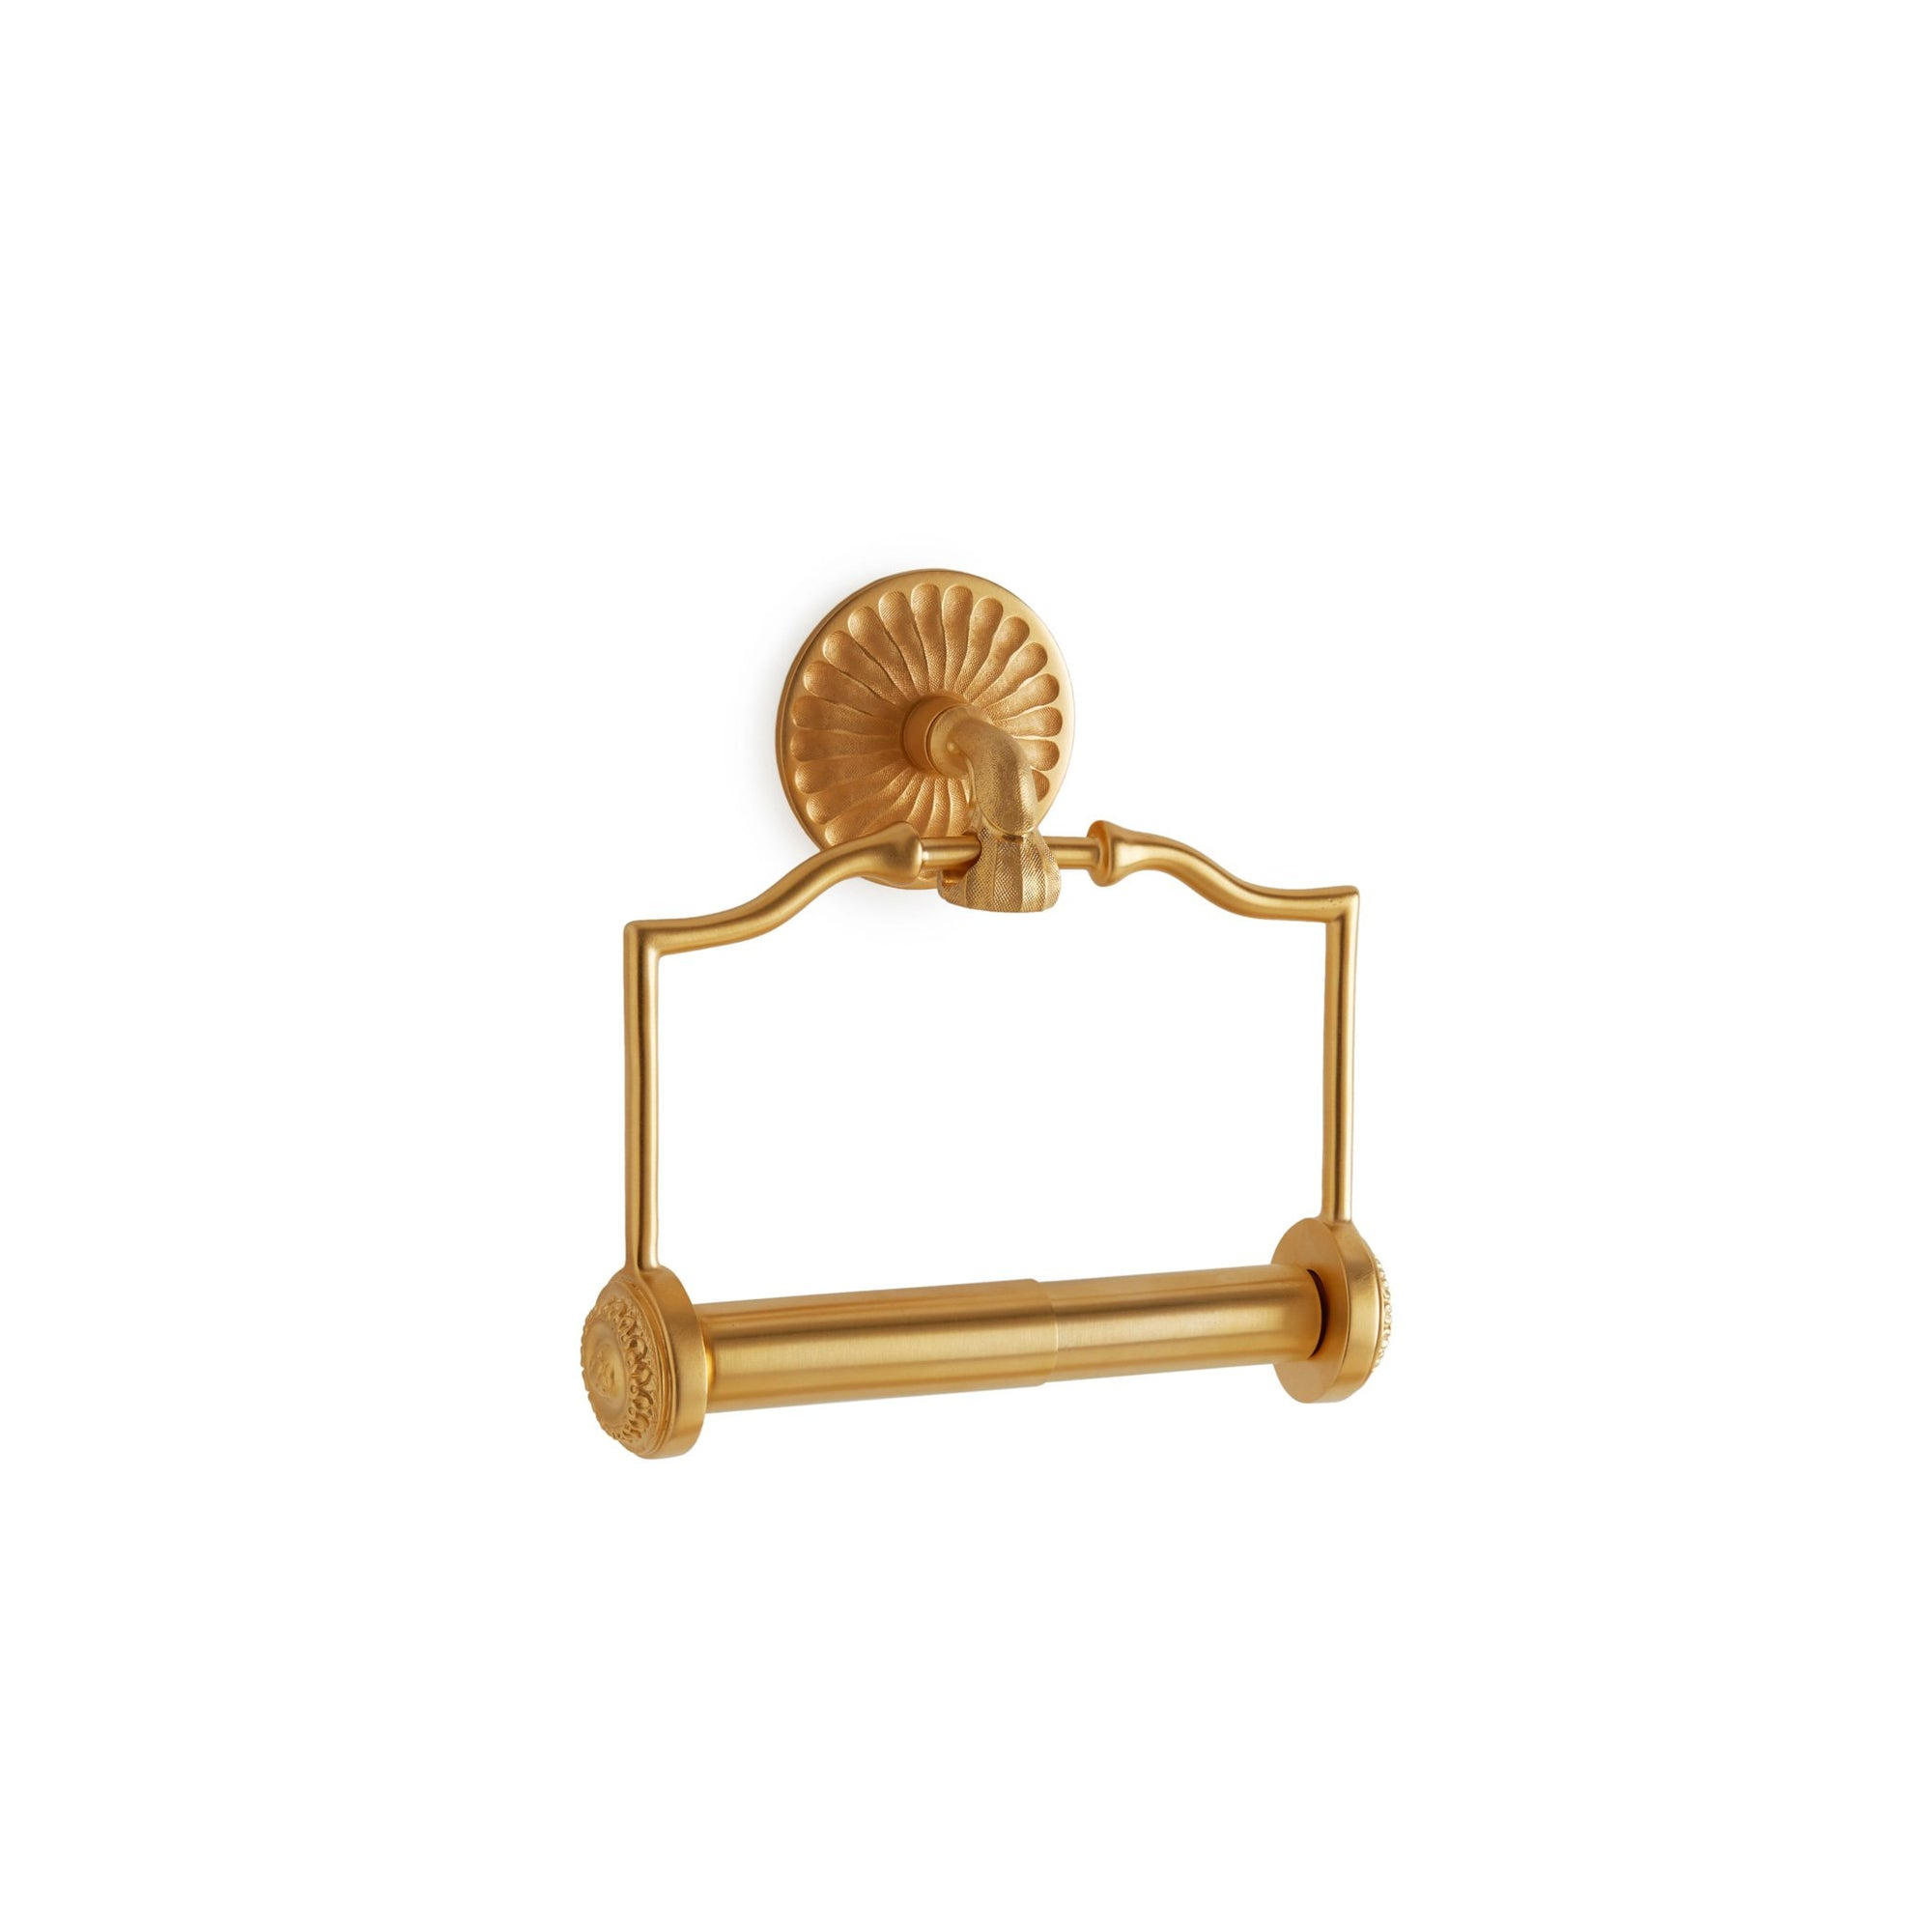 3542-GP Sherle Wagner International Scandia Paper Holder in Gold Plate metal finish